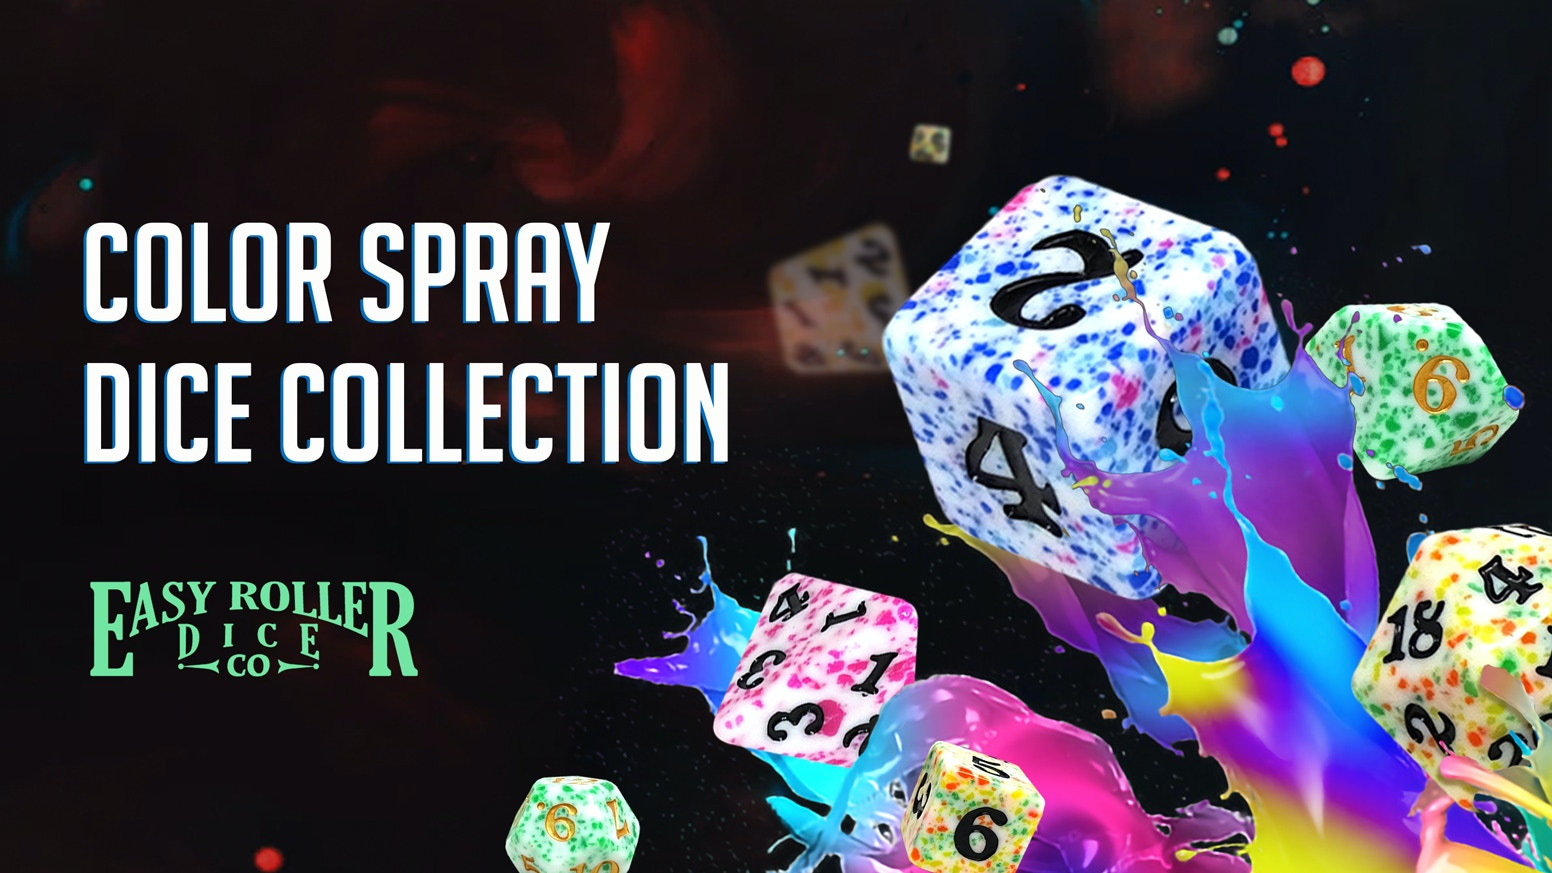 New Color Spray Dice Collection, available in classic sets, as singles, or in customized configurations to meet your gaming needs.